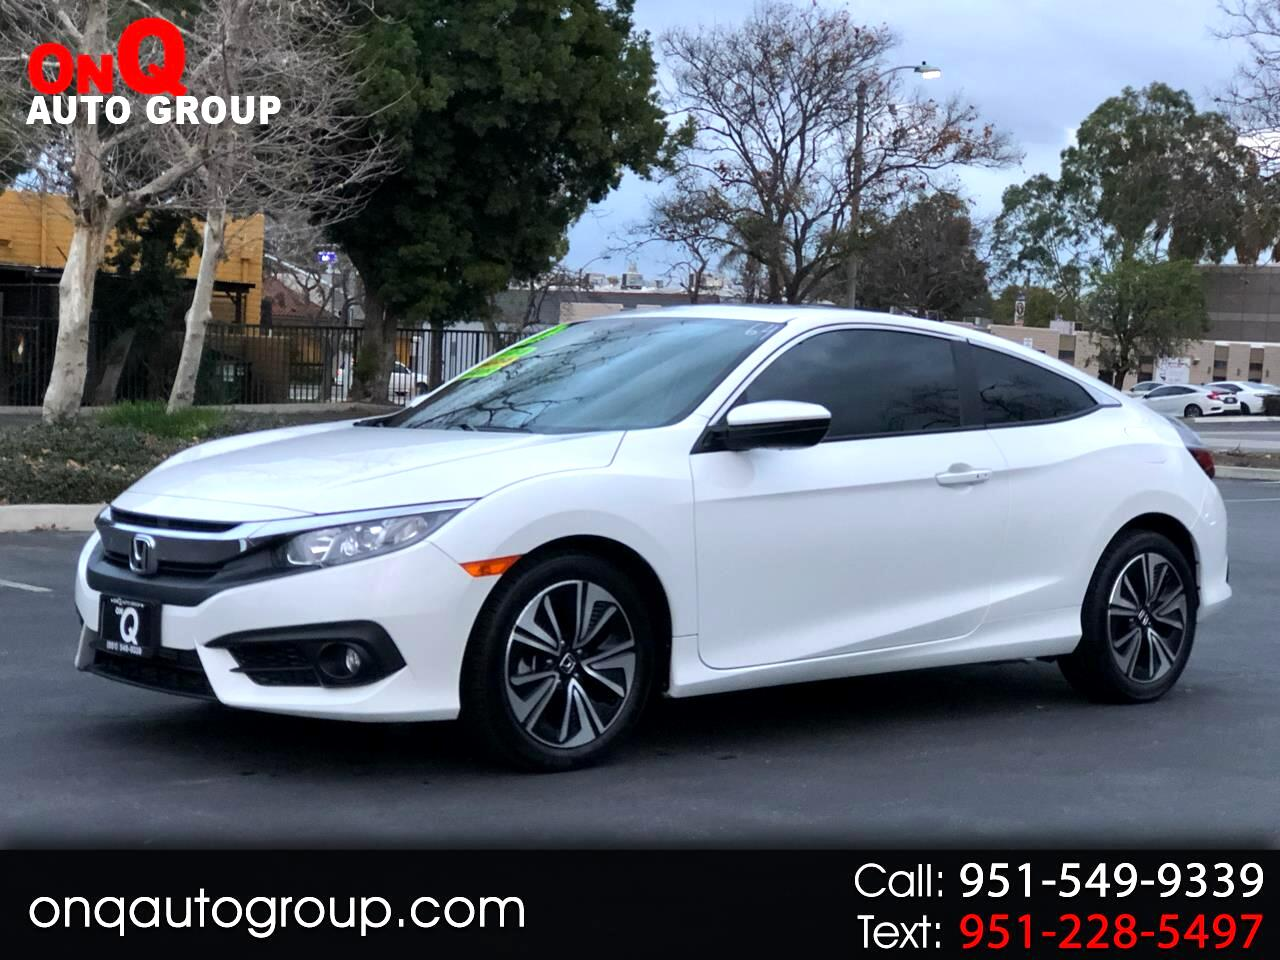 2018 Honda Civic Coupe 2dr CVT EX